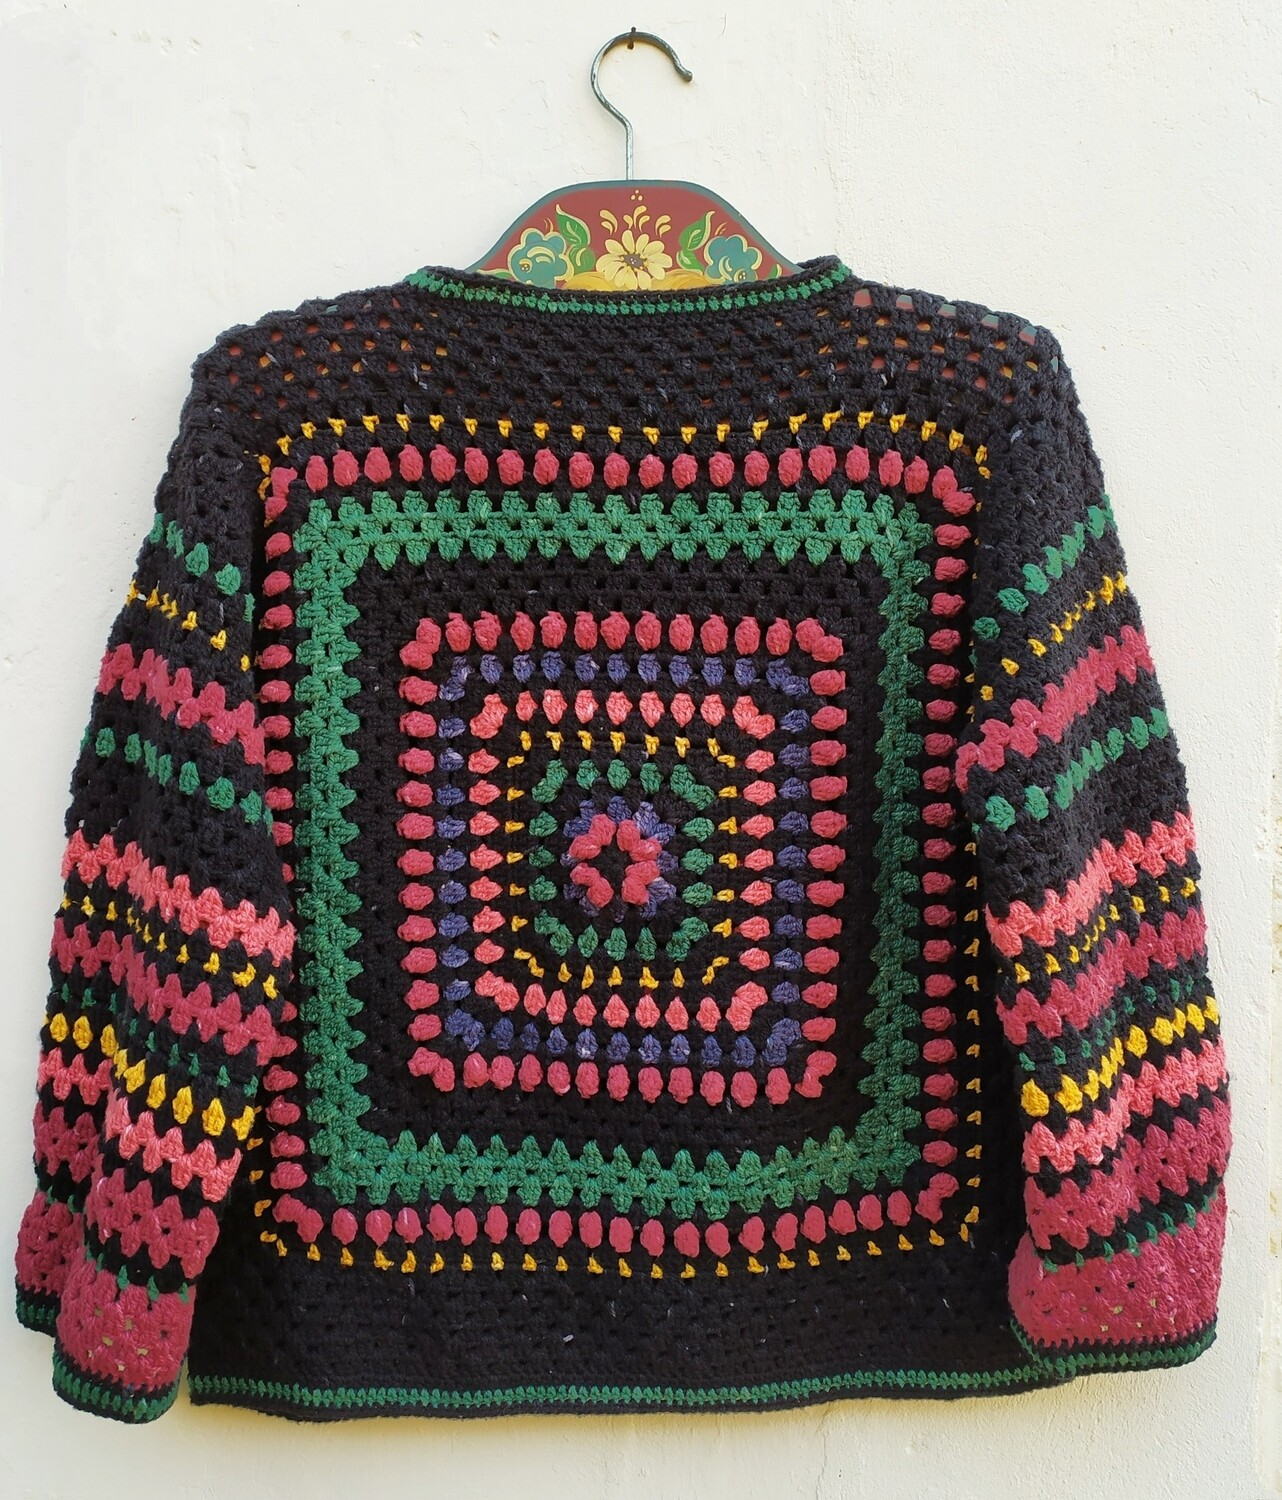 Berry Blossom Sweater Designed by Crazy Crochet Girl